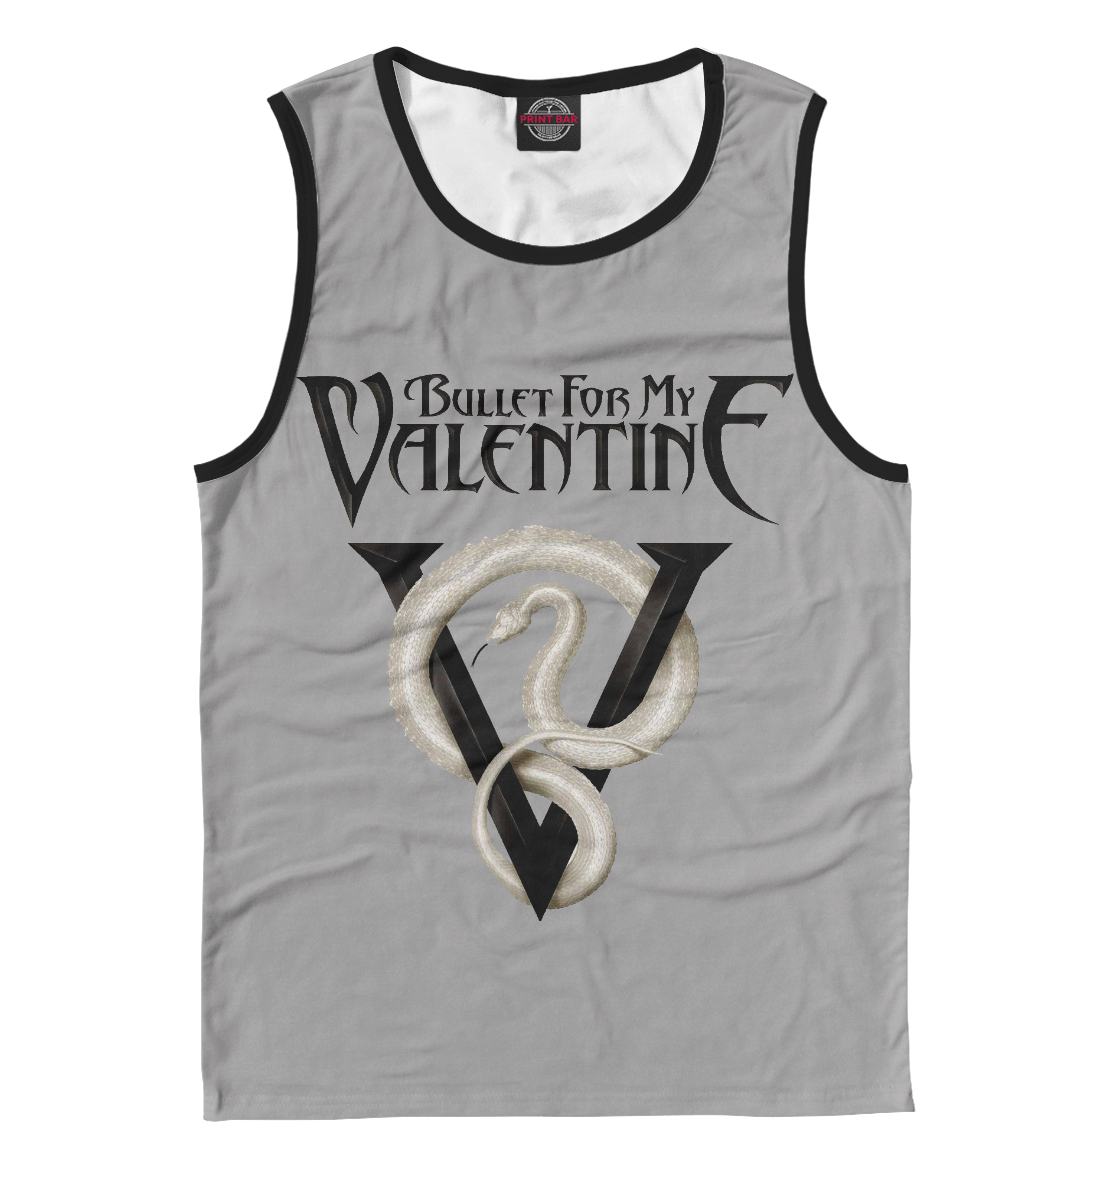 Купить Bullet for My Valentine Venom, Printbar, Майки, BMV-399029-may-2